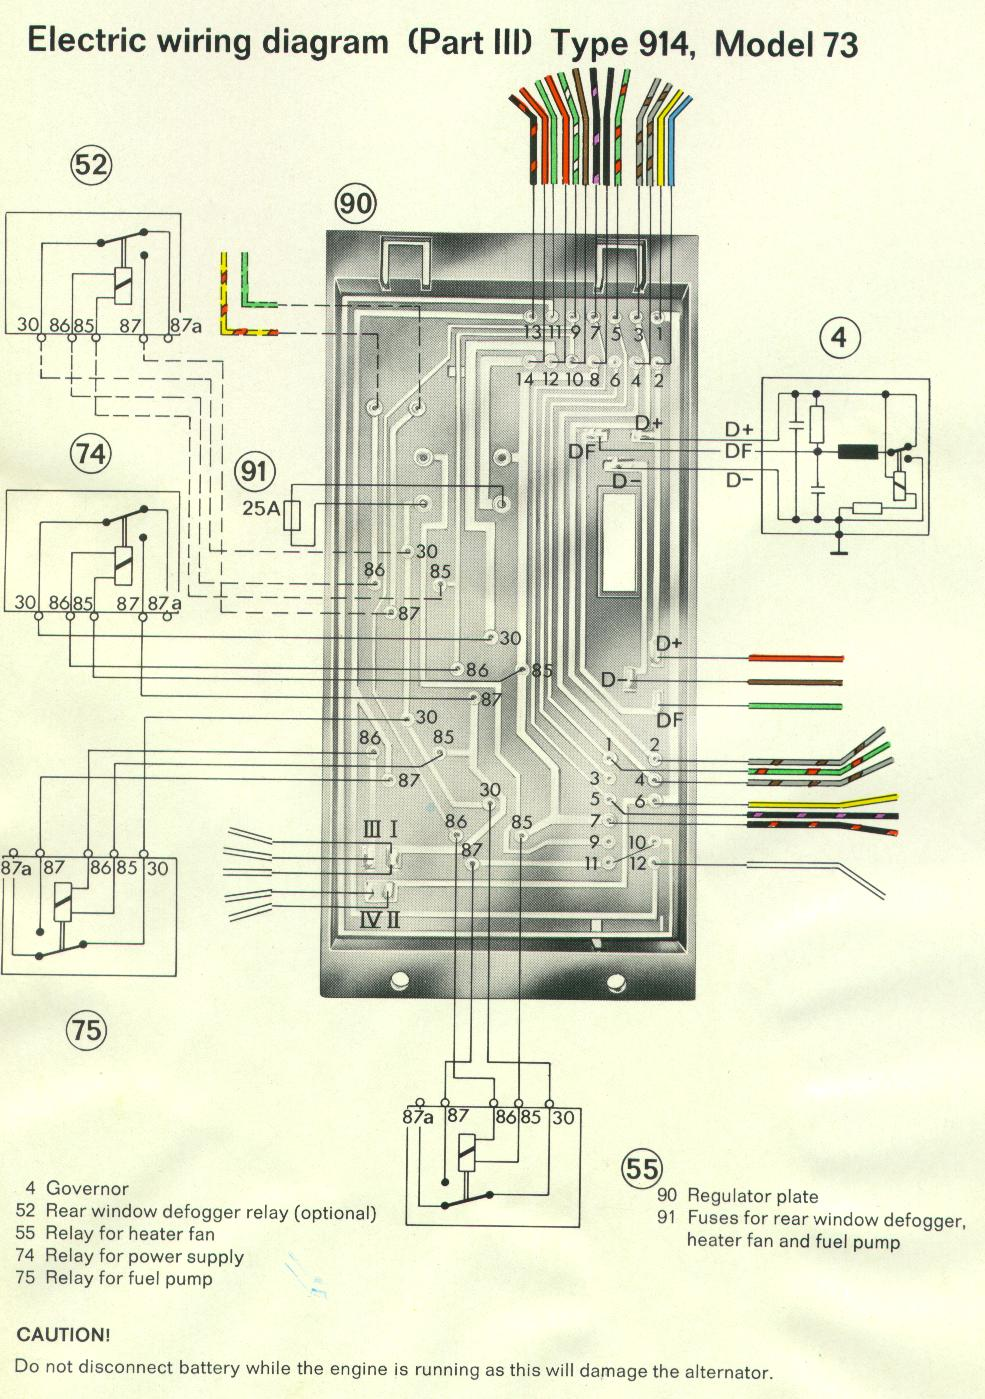 Incredible 914World Com Relay Board Wiring Digital Resources Indicompassionincorg